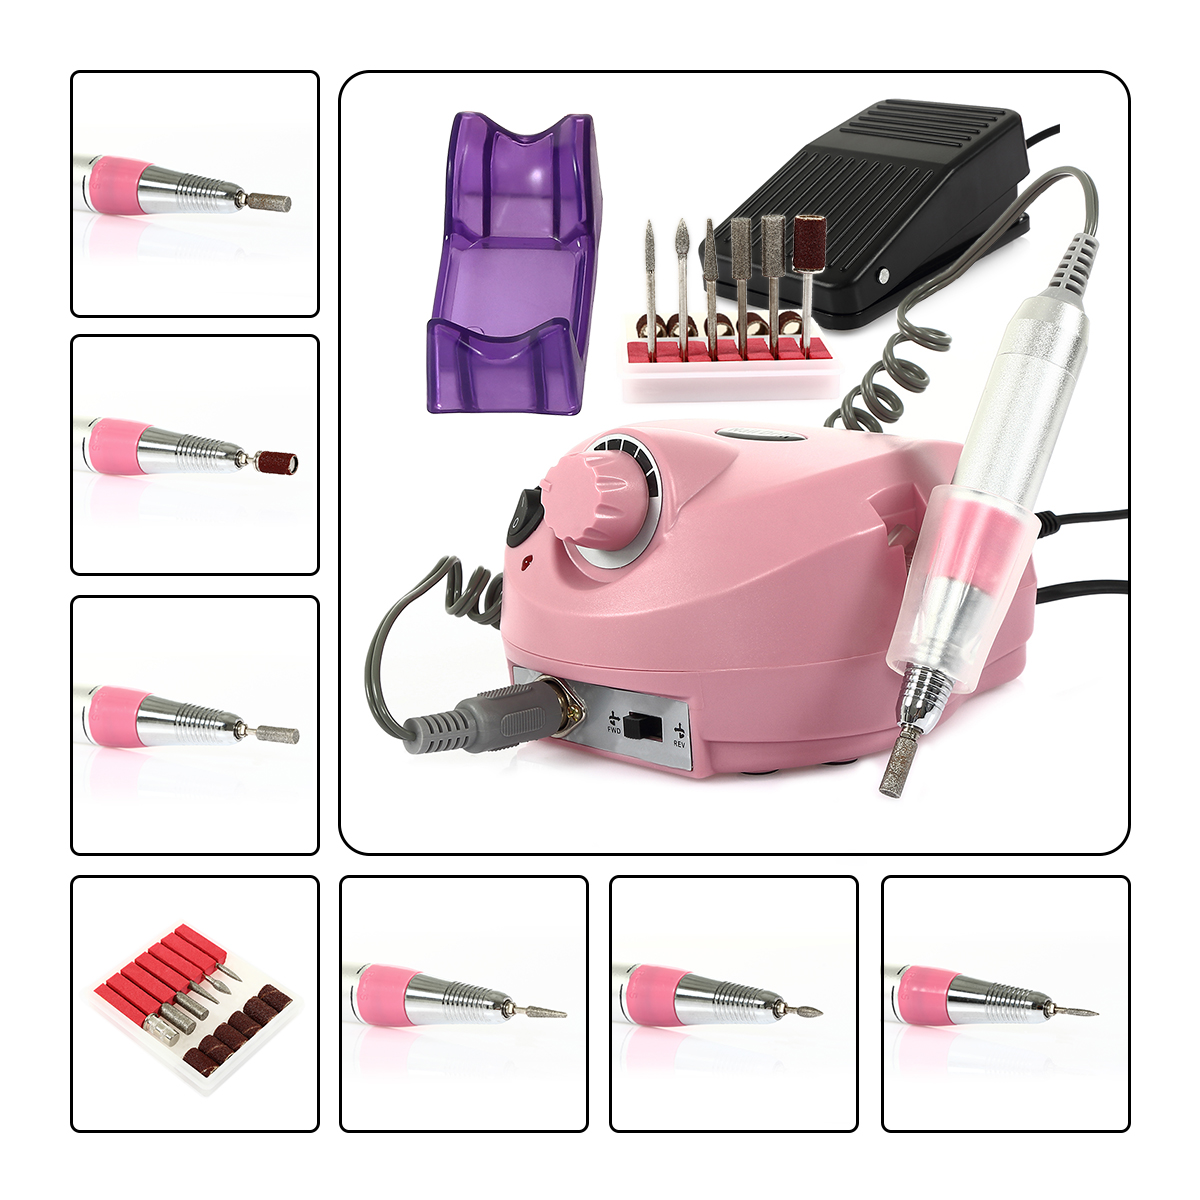 CoastaCloud Professional 110V 30,000RPM Nail Drill Manicure Pedicure File Machine Salon Kits with Pedal Electric Acrylic Polish Nail Art Drill Pink